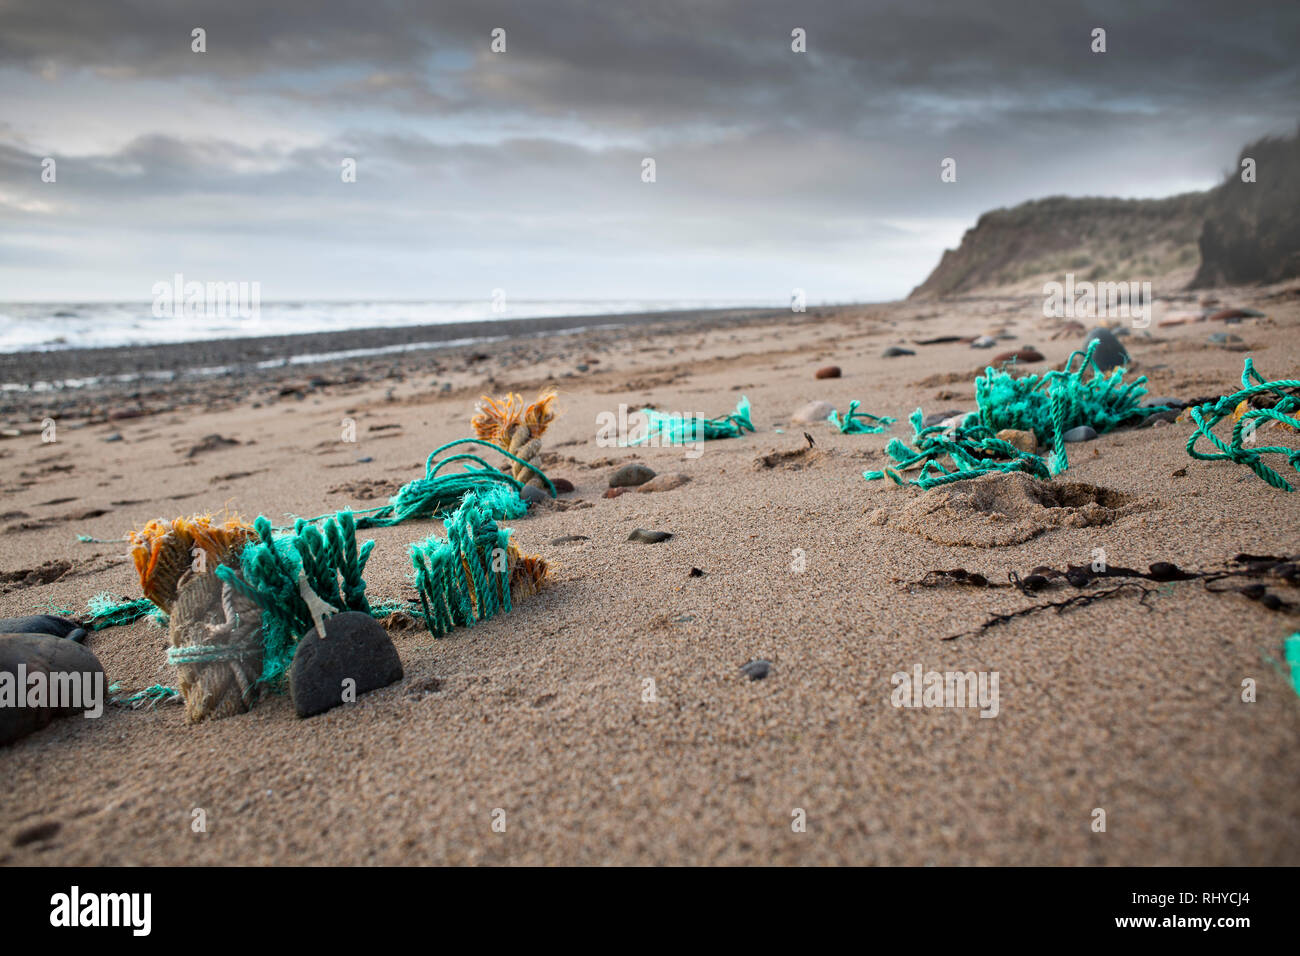 Discarded fishing nets embedded in sand on UK beach a major form of plastic pollution. - Stock Image